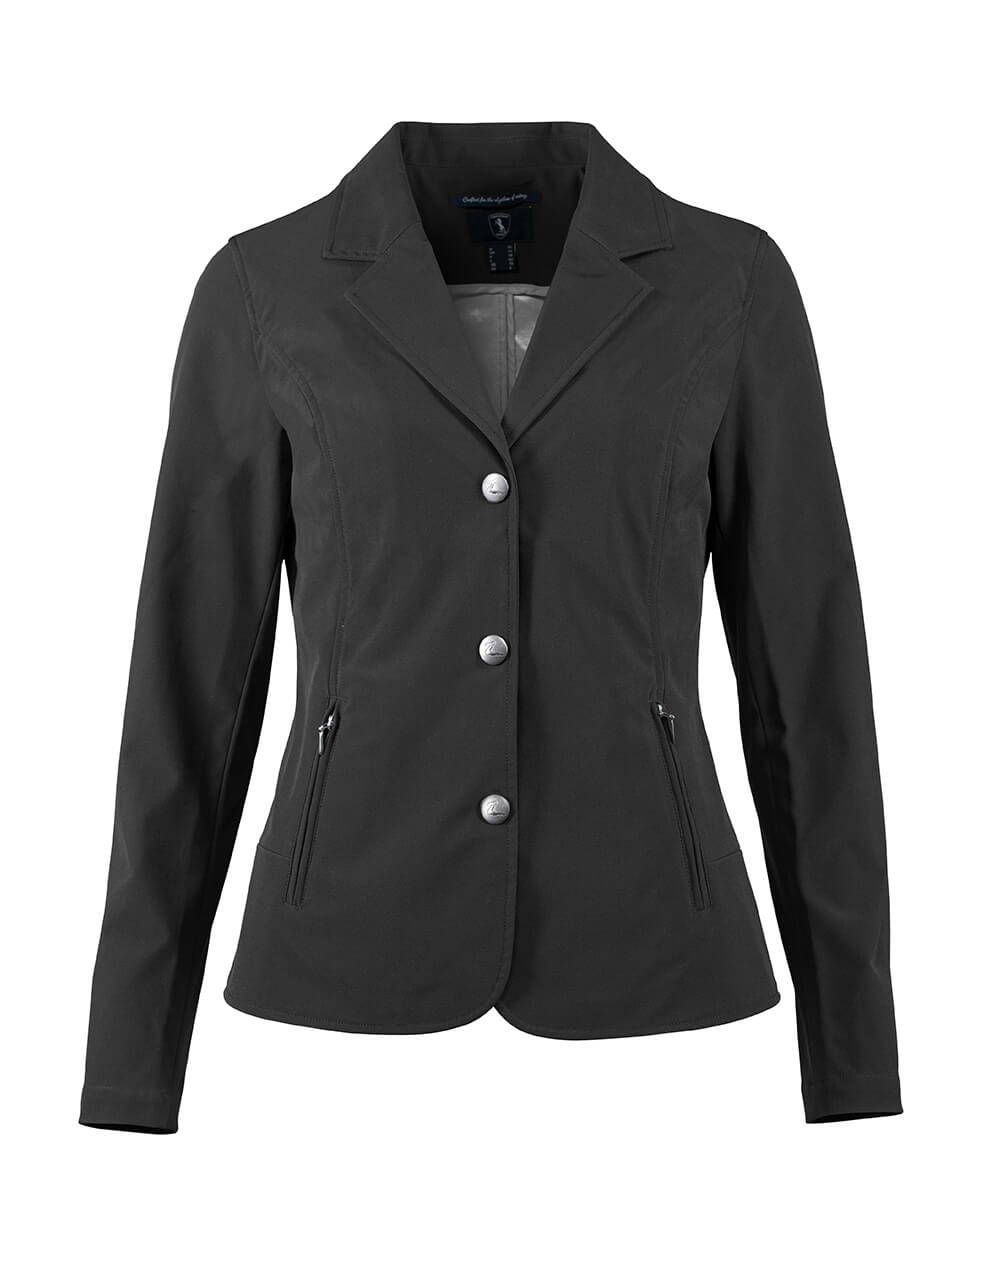 Elegant softshell show jacket with zip pockets and clip buttons ideal for horse shows and formal occasions